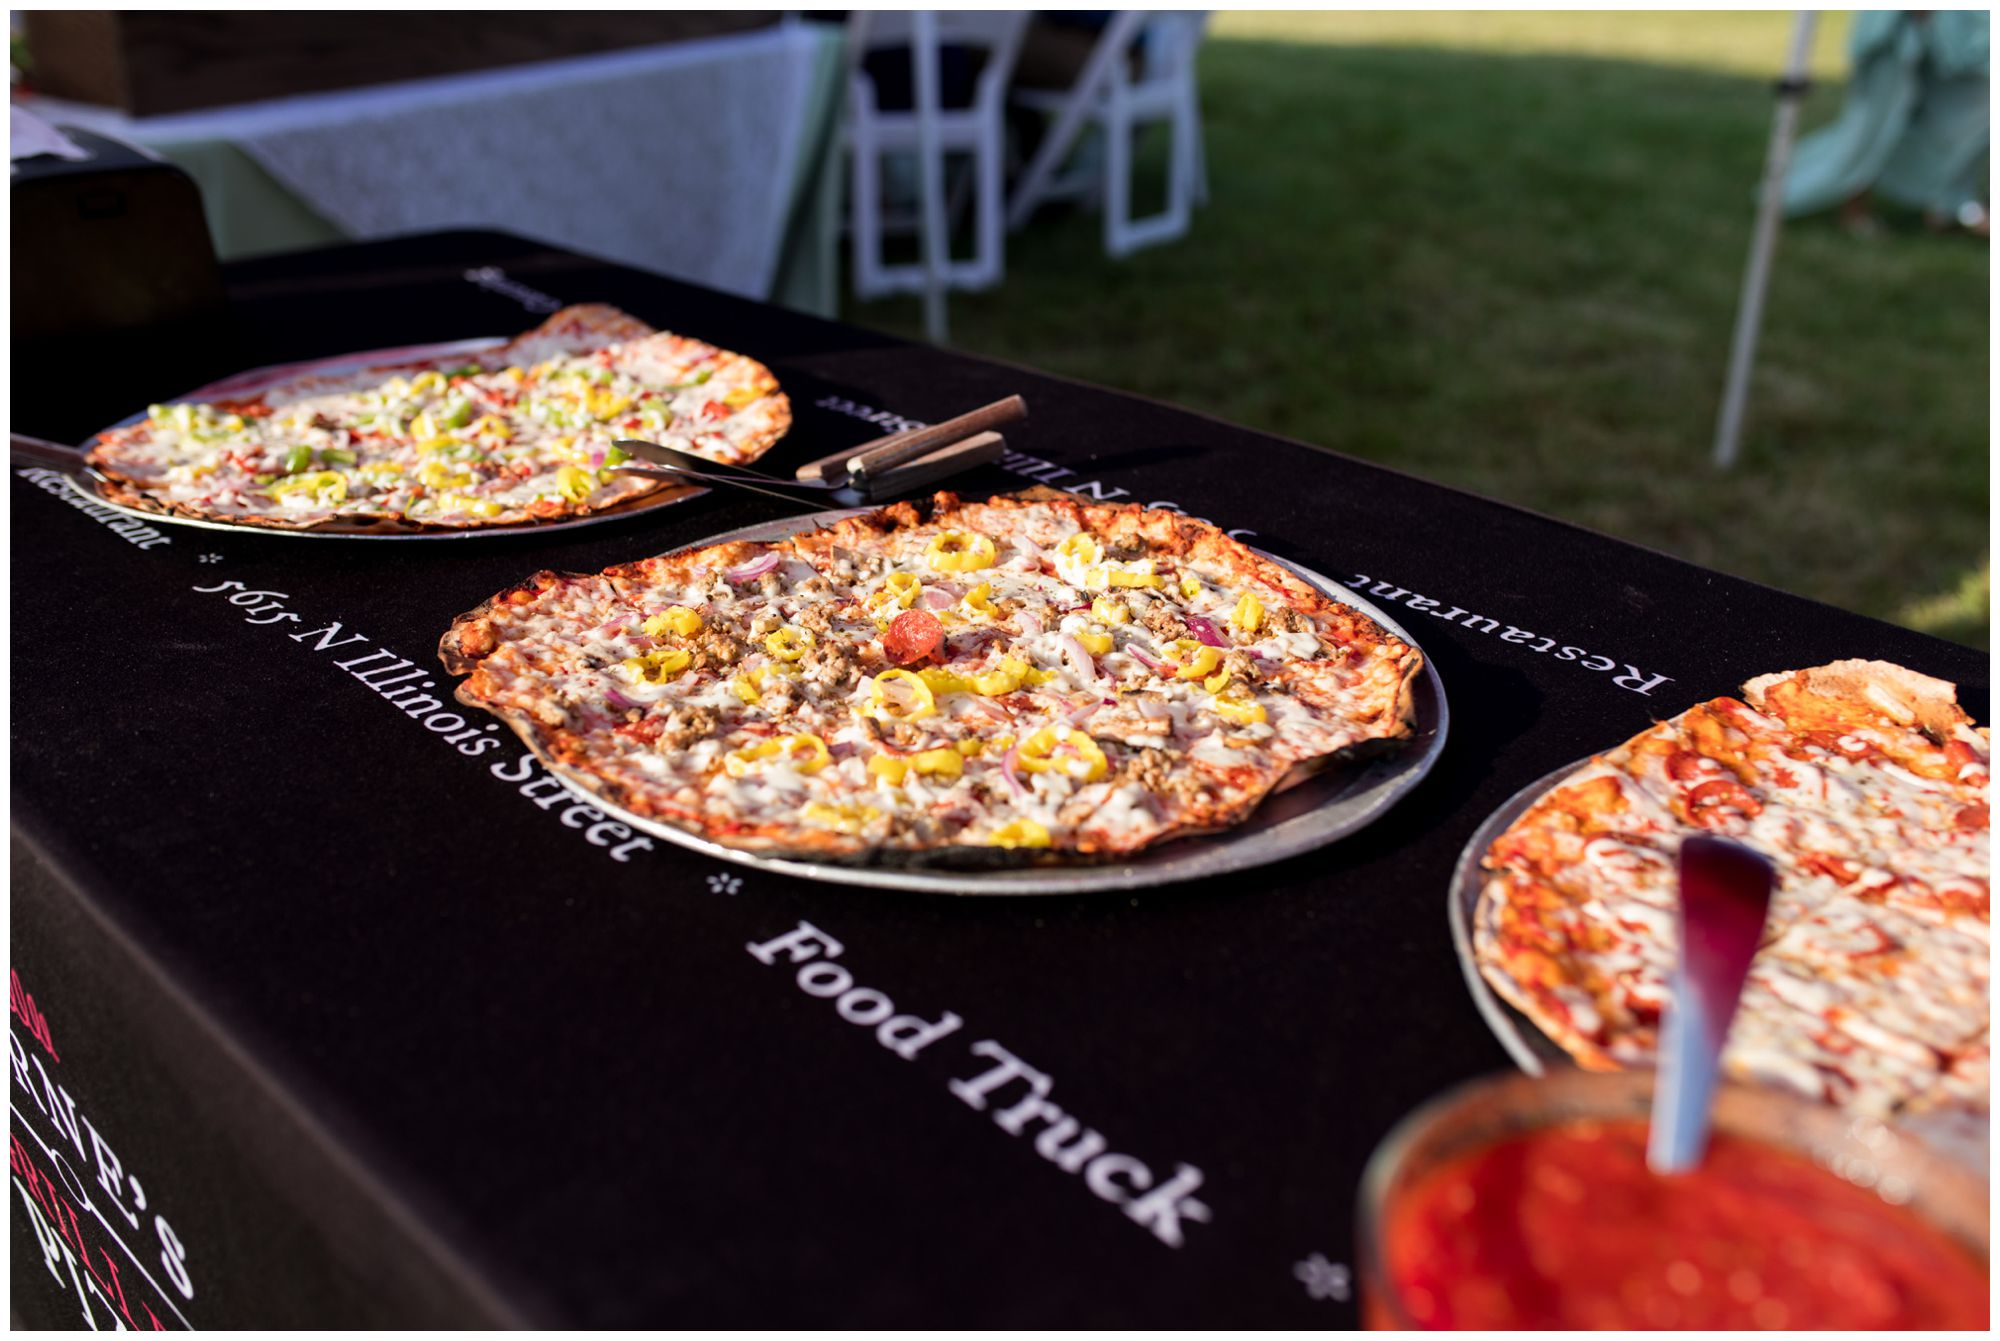 Byrne's grilled pizza in Indianapolis at wedding reception